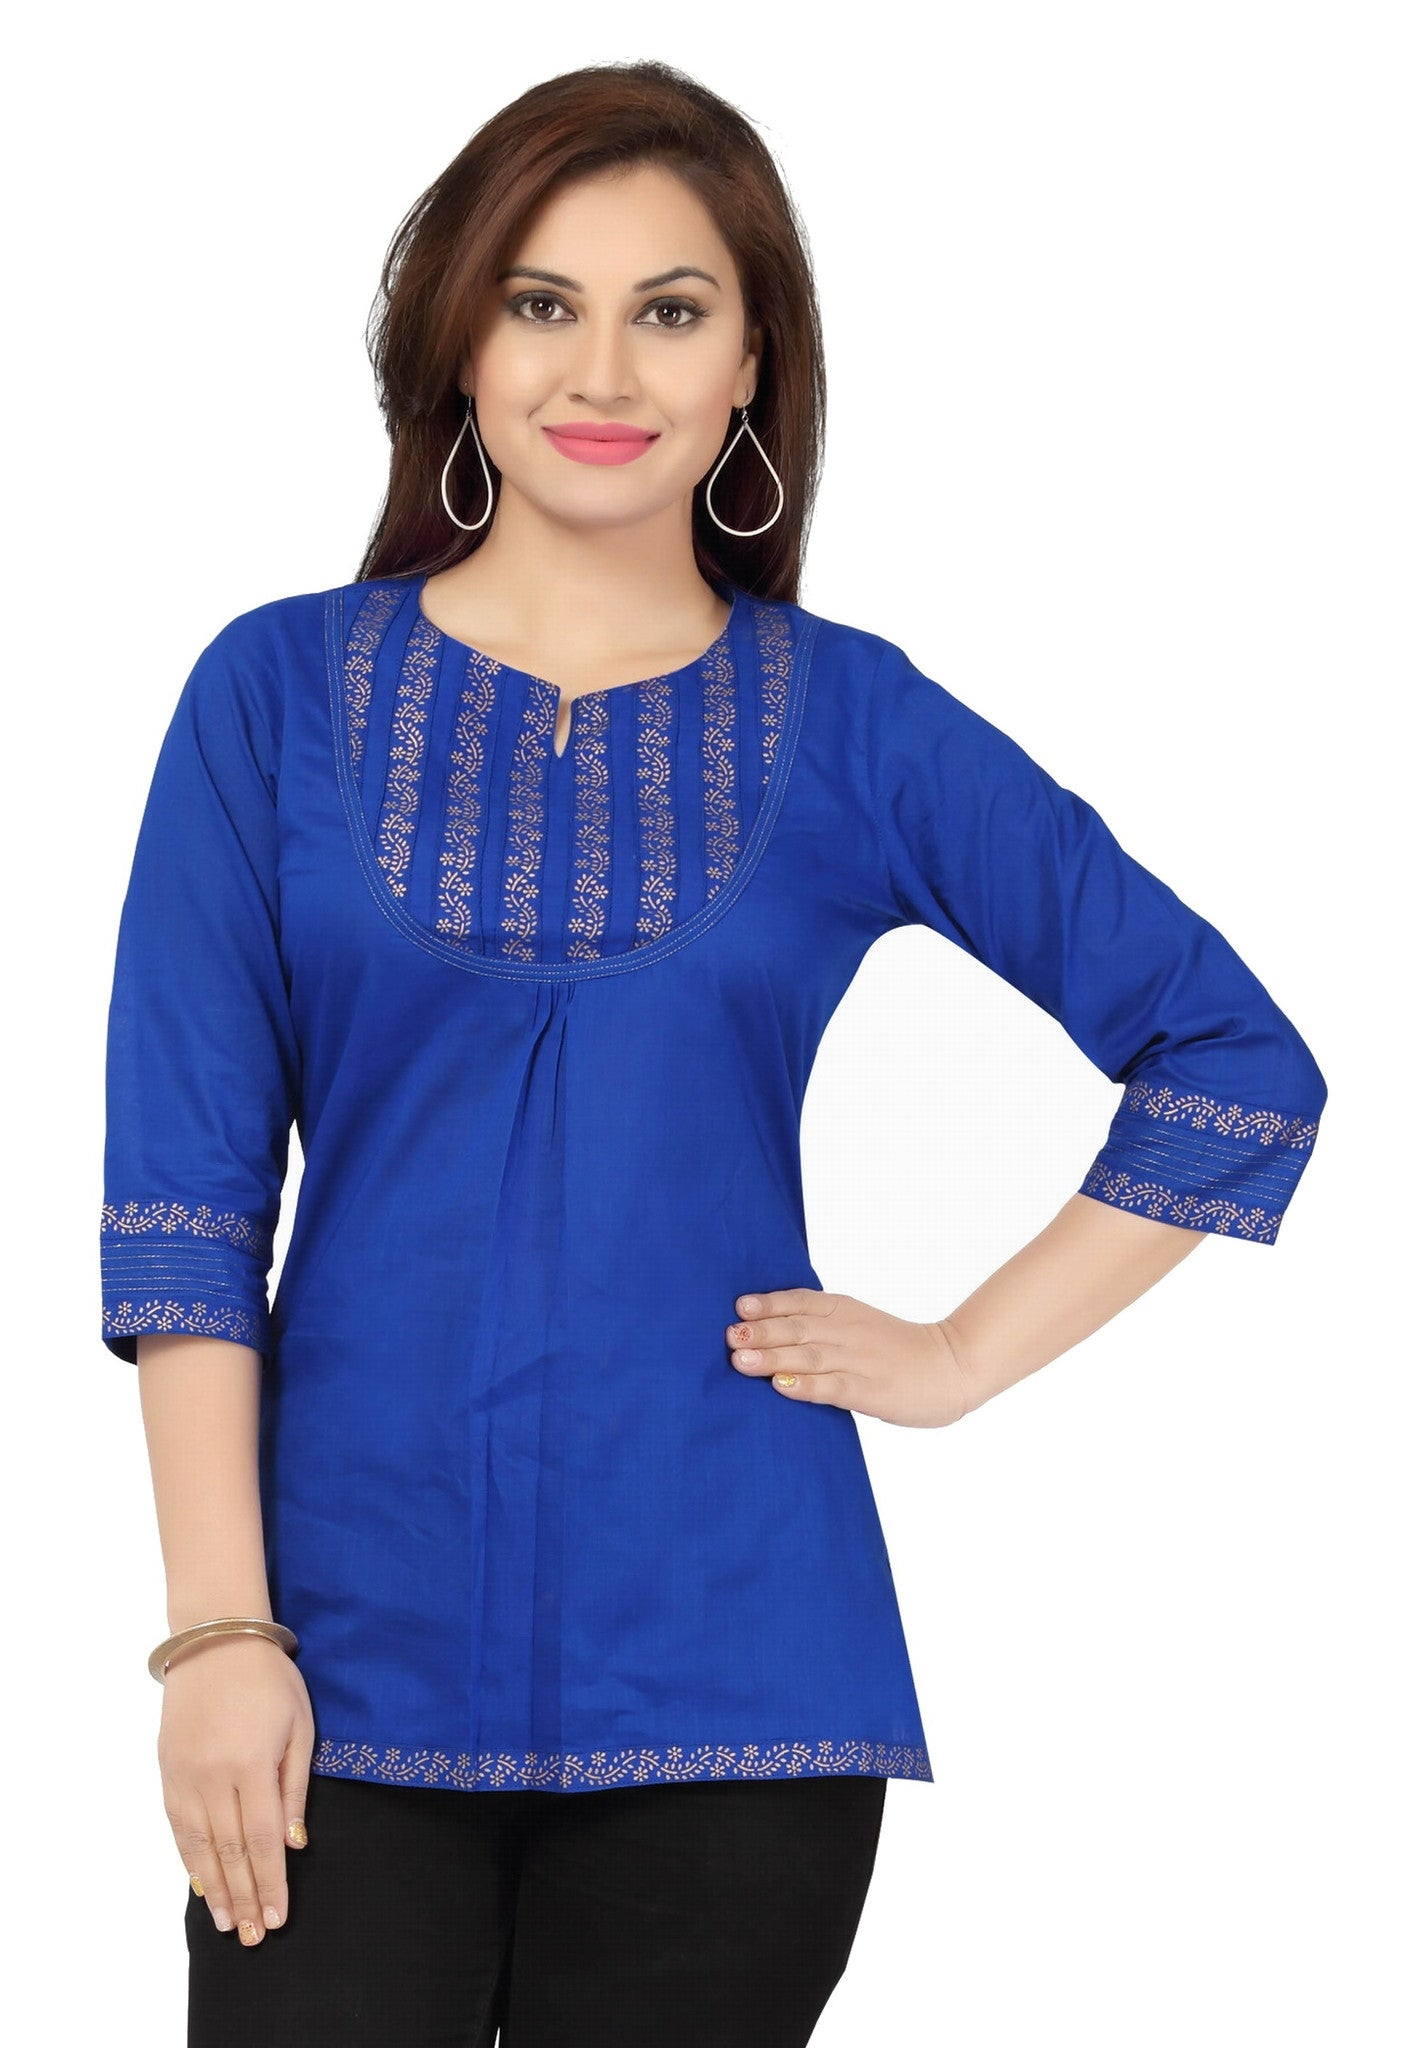 Blue printed cotton designer tunic for women with round neck - Boutique4India Inc.